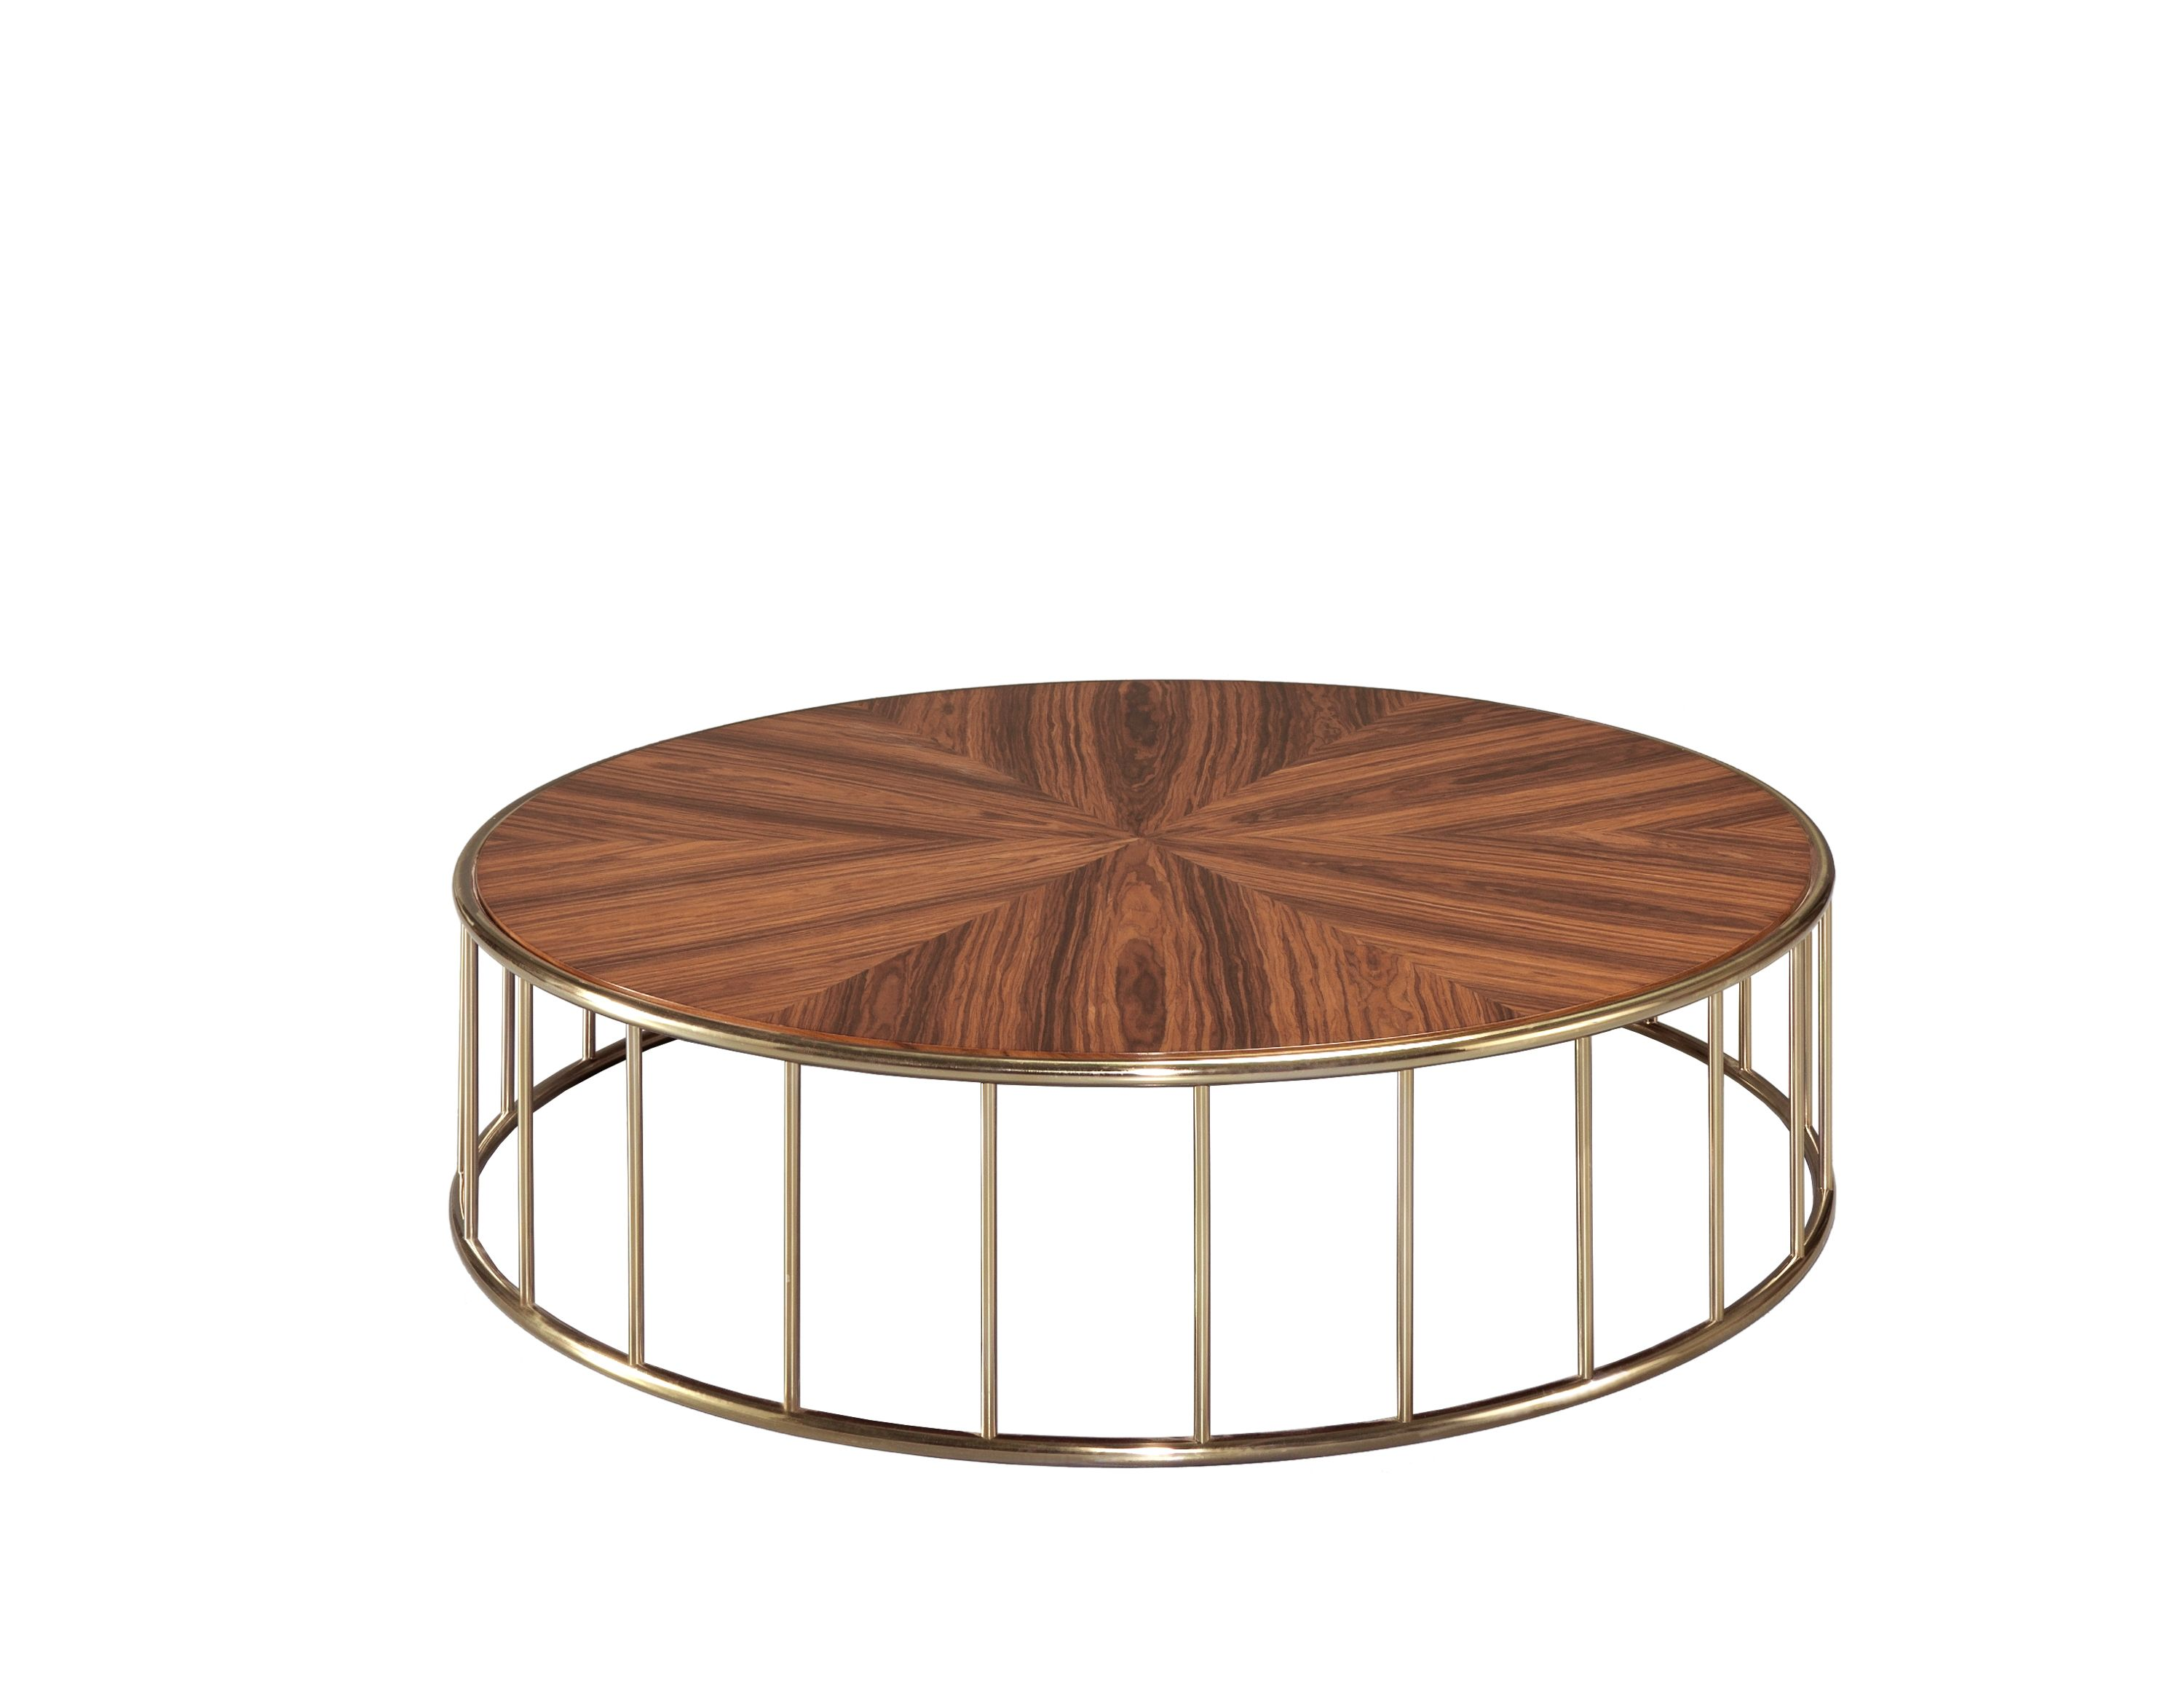 Laskasas | Still Coffee Table | Elegant Round Coffee Table With Guilded Stainless  Steel Base And